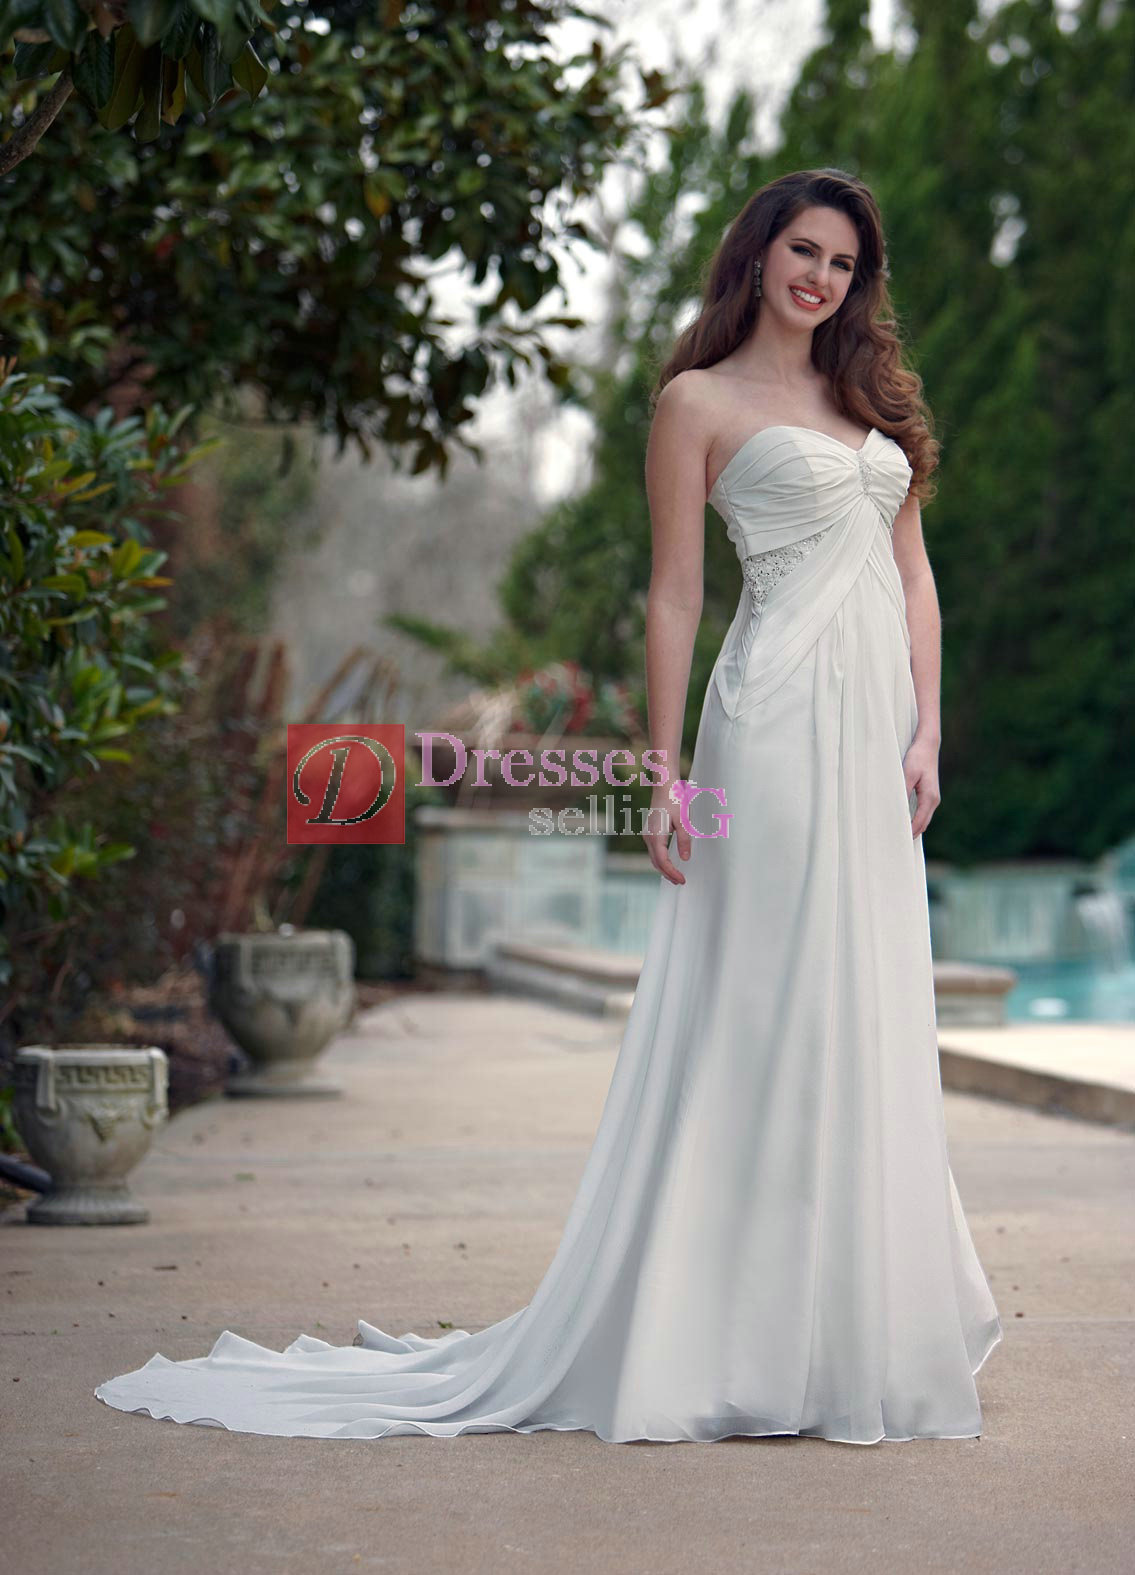 Whiteazalea maternity dresses choosing the maternity for Pregnancy dress for wedding